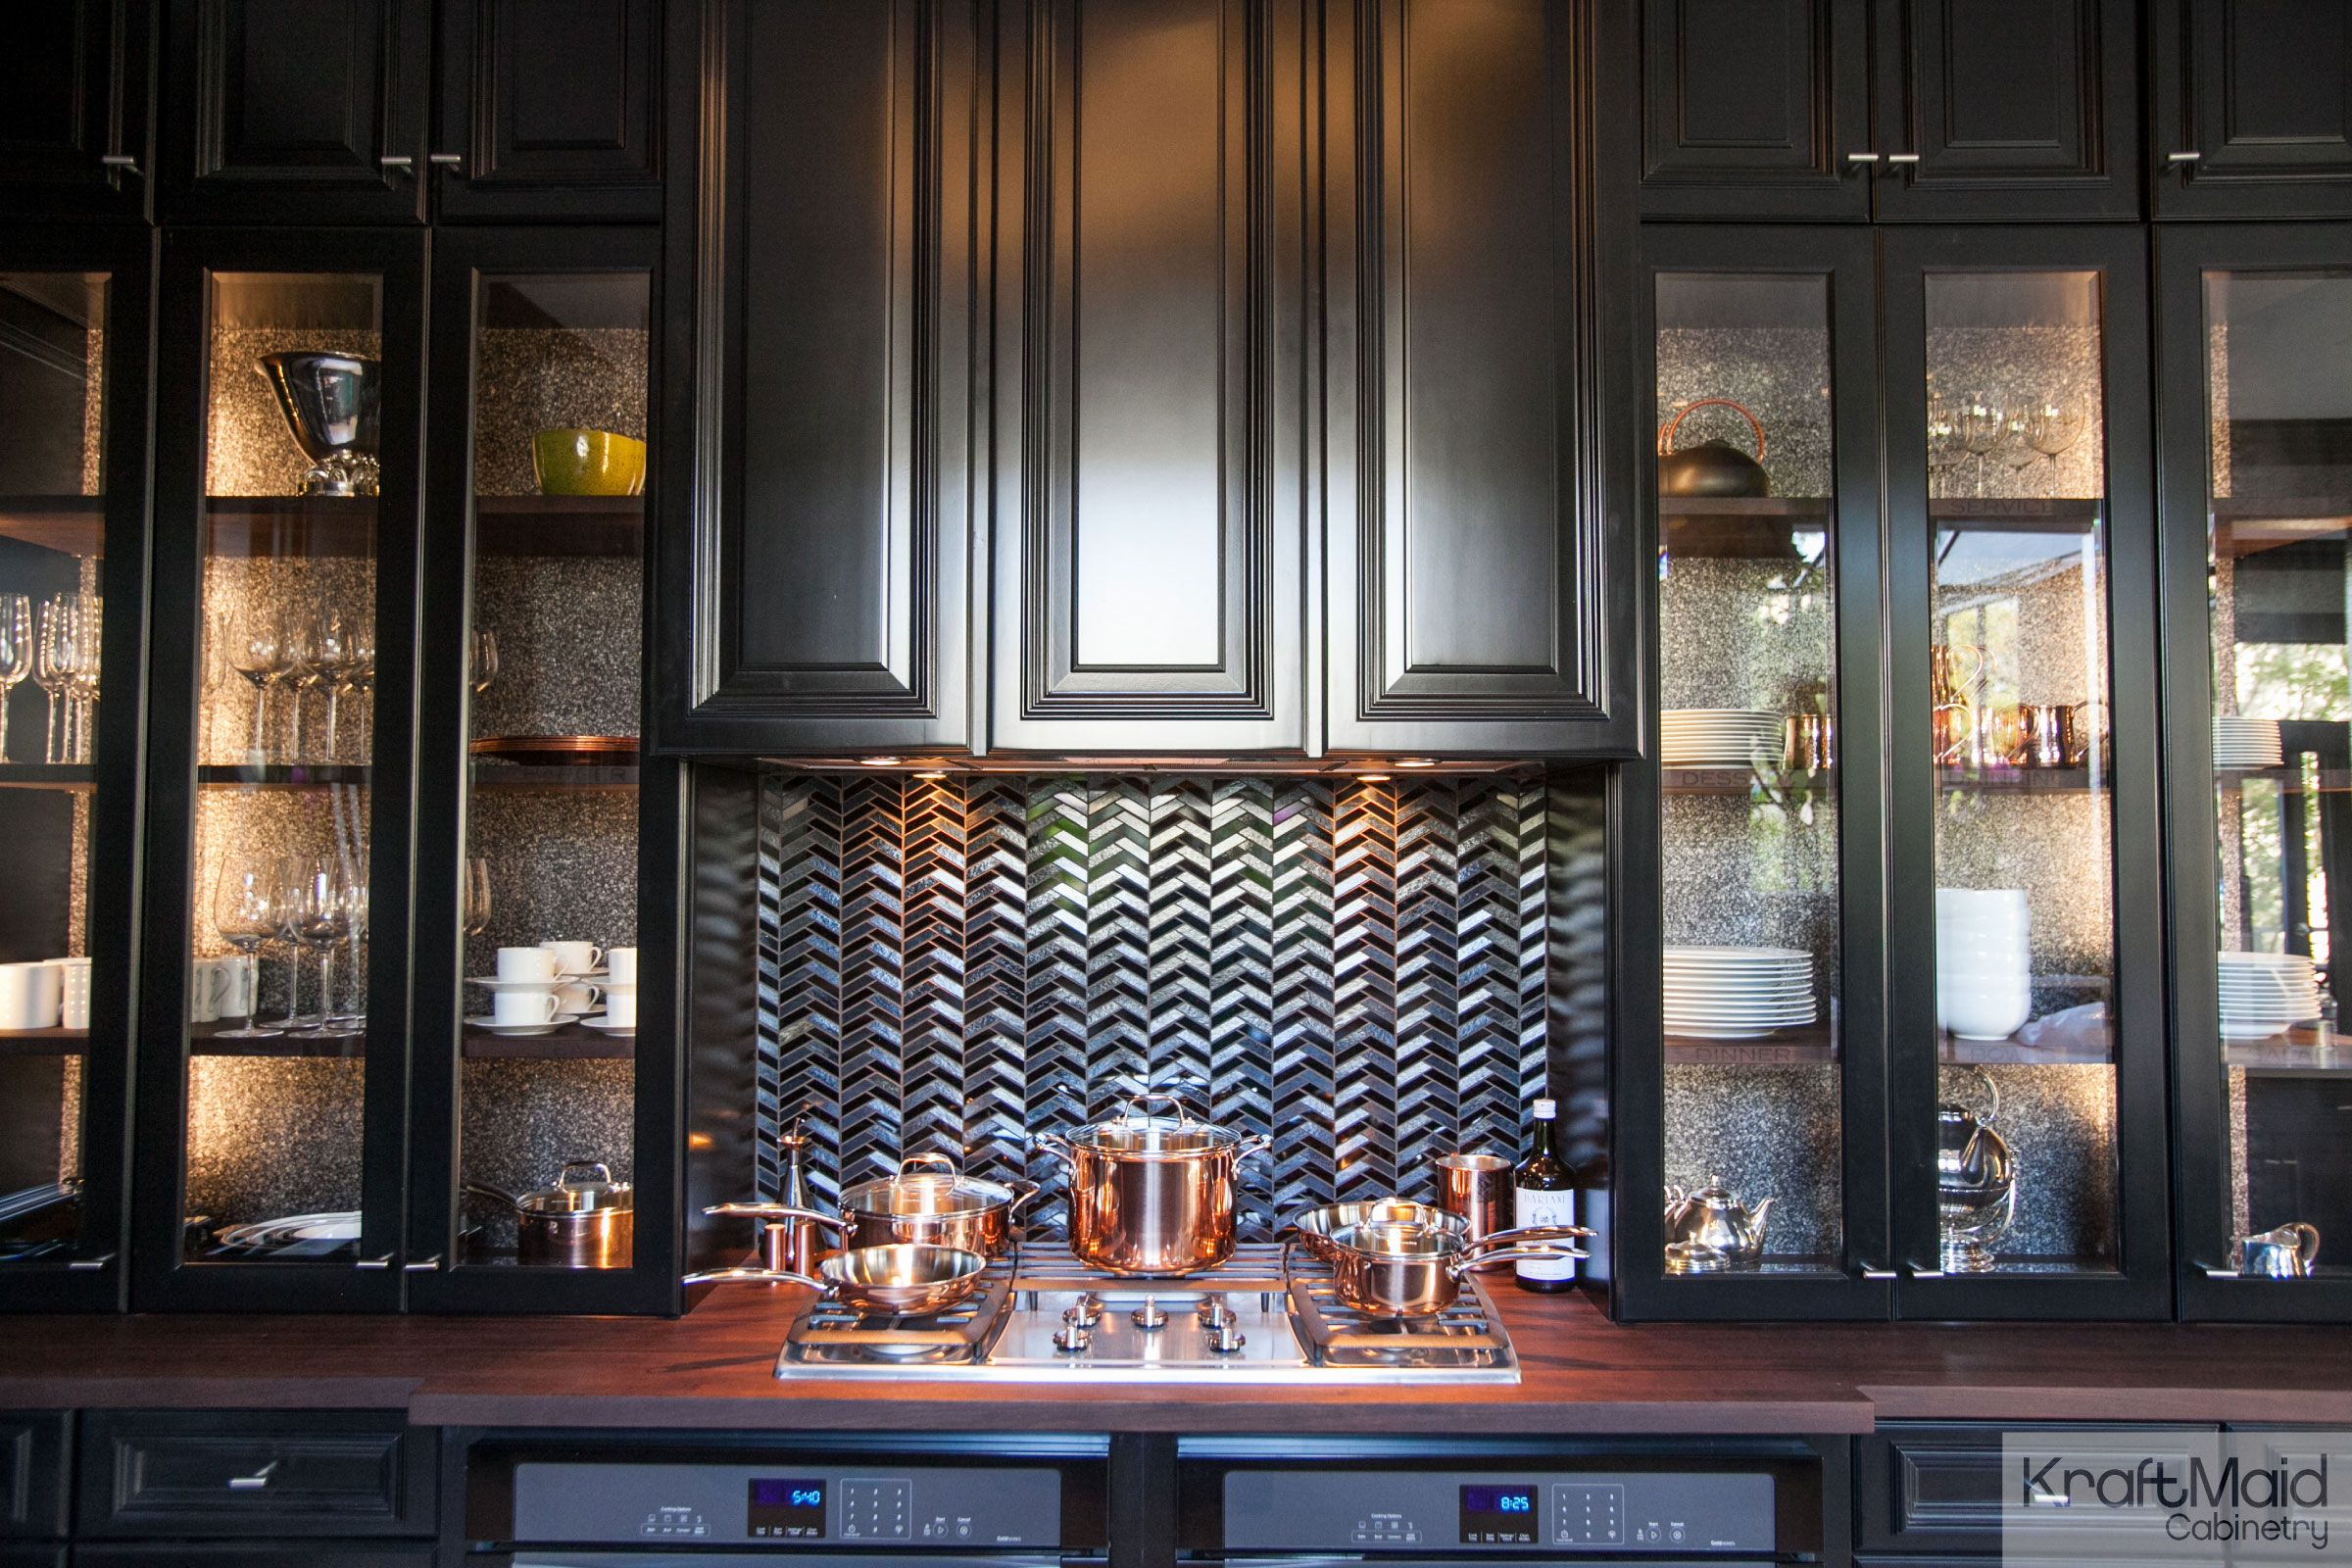 (Video) Kitchen of the Year designer's vision Beautiful